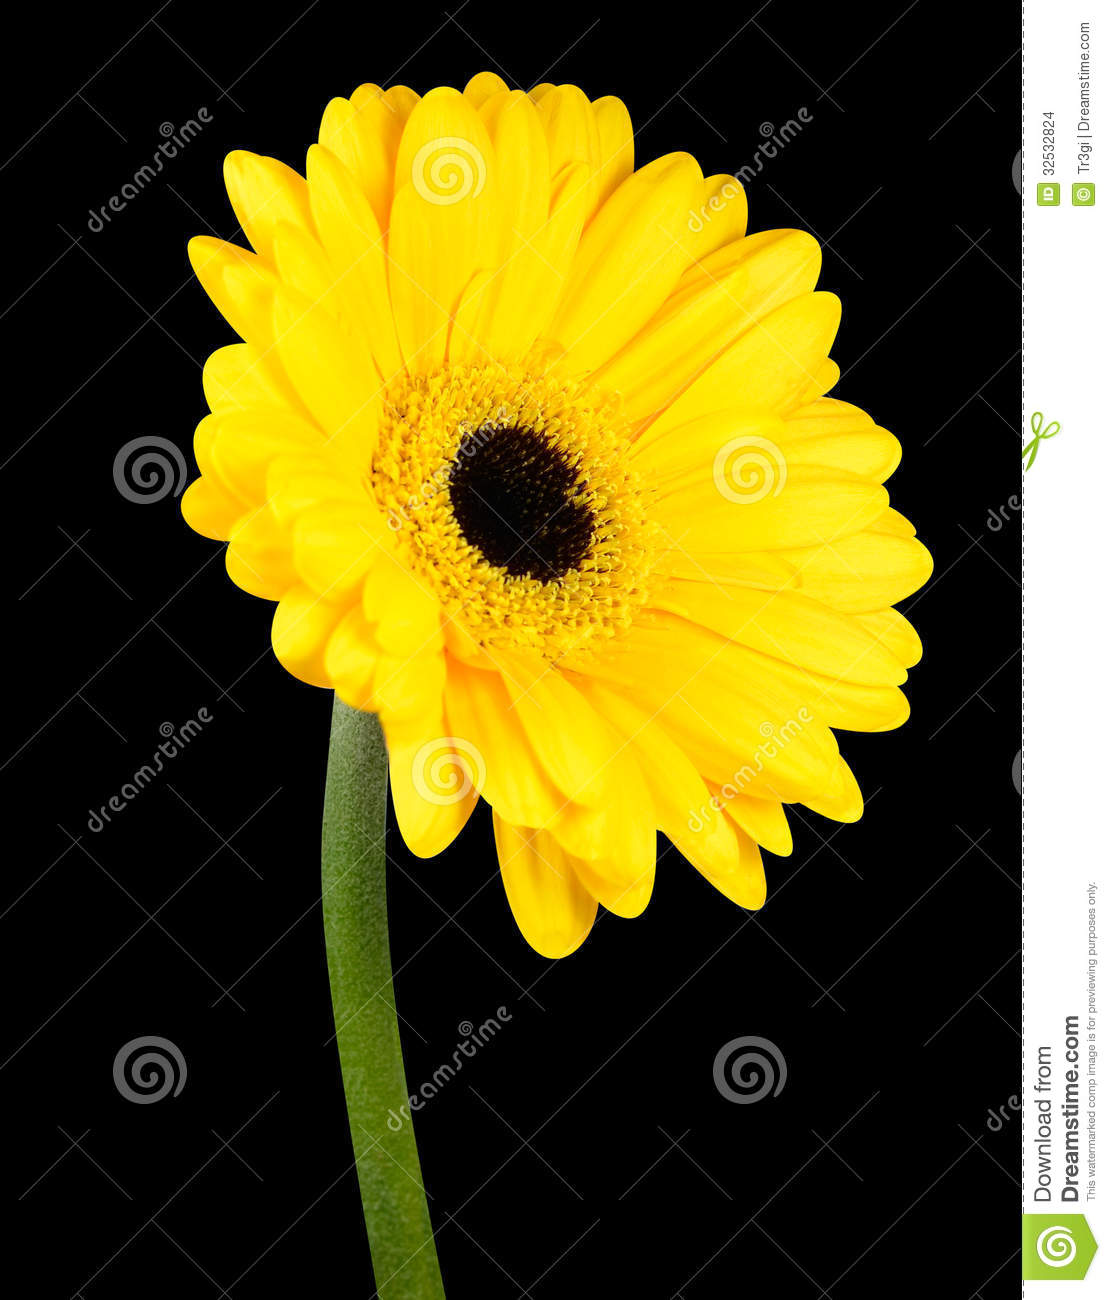 Yellow gerbera flower with green stem isolated stock photo image yellow gerbera flower with green stem isolated on black background mightylinksfo